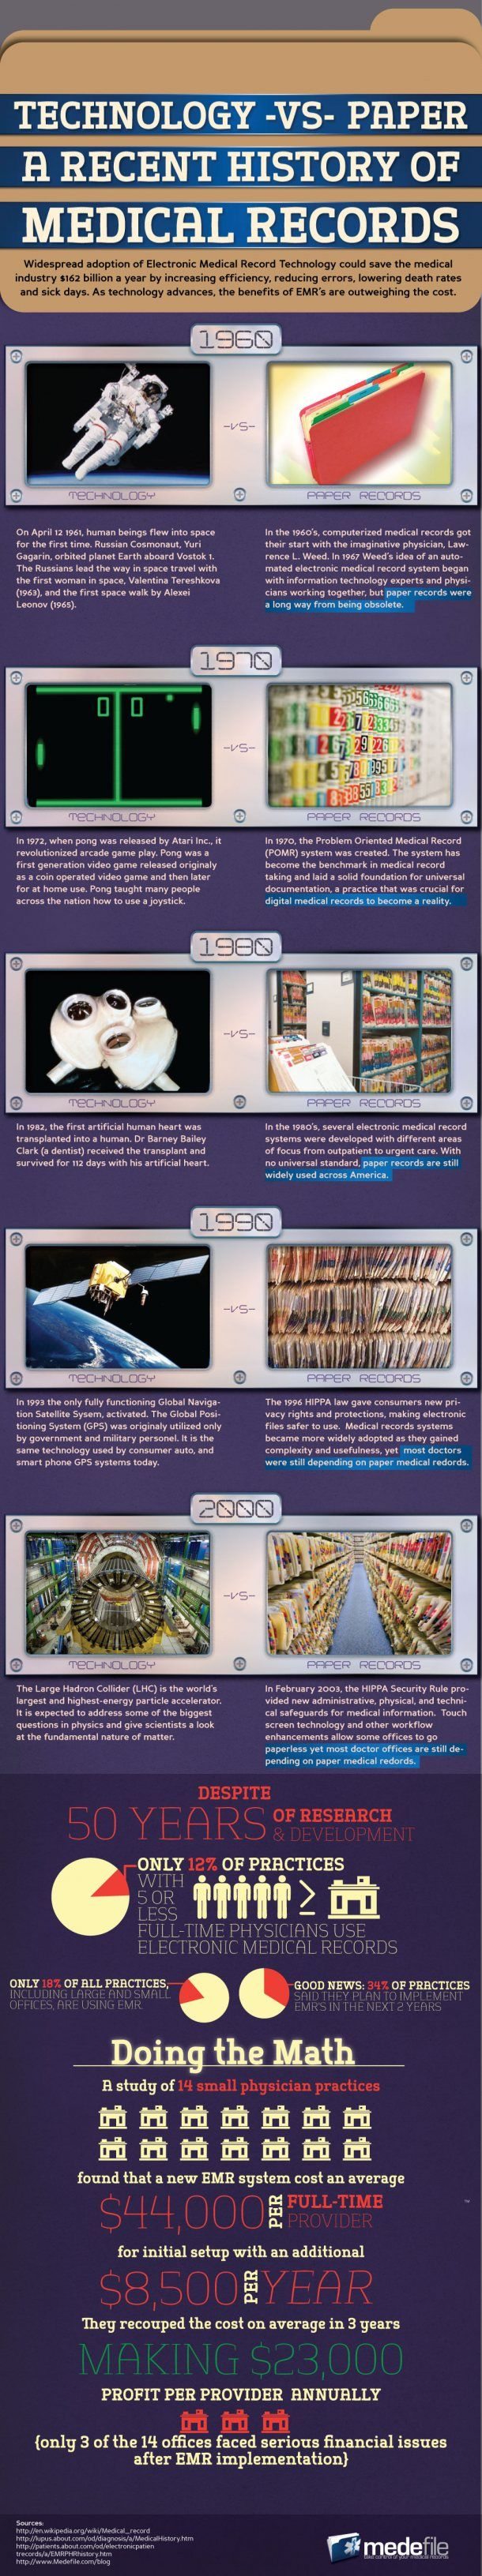 Technology Versus Paper: A Recent History of Medical Records [INFOGRAPHIC] #emr #phr #ehr #hit